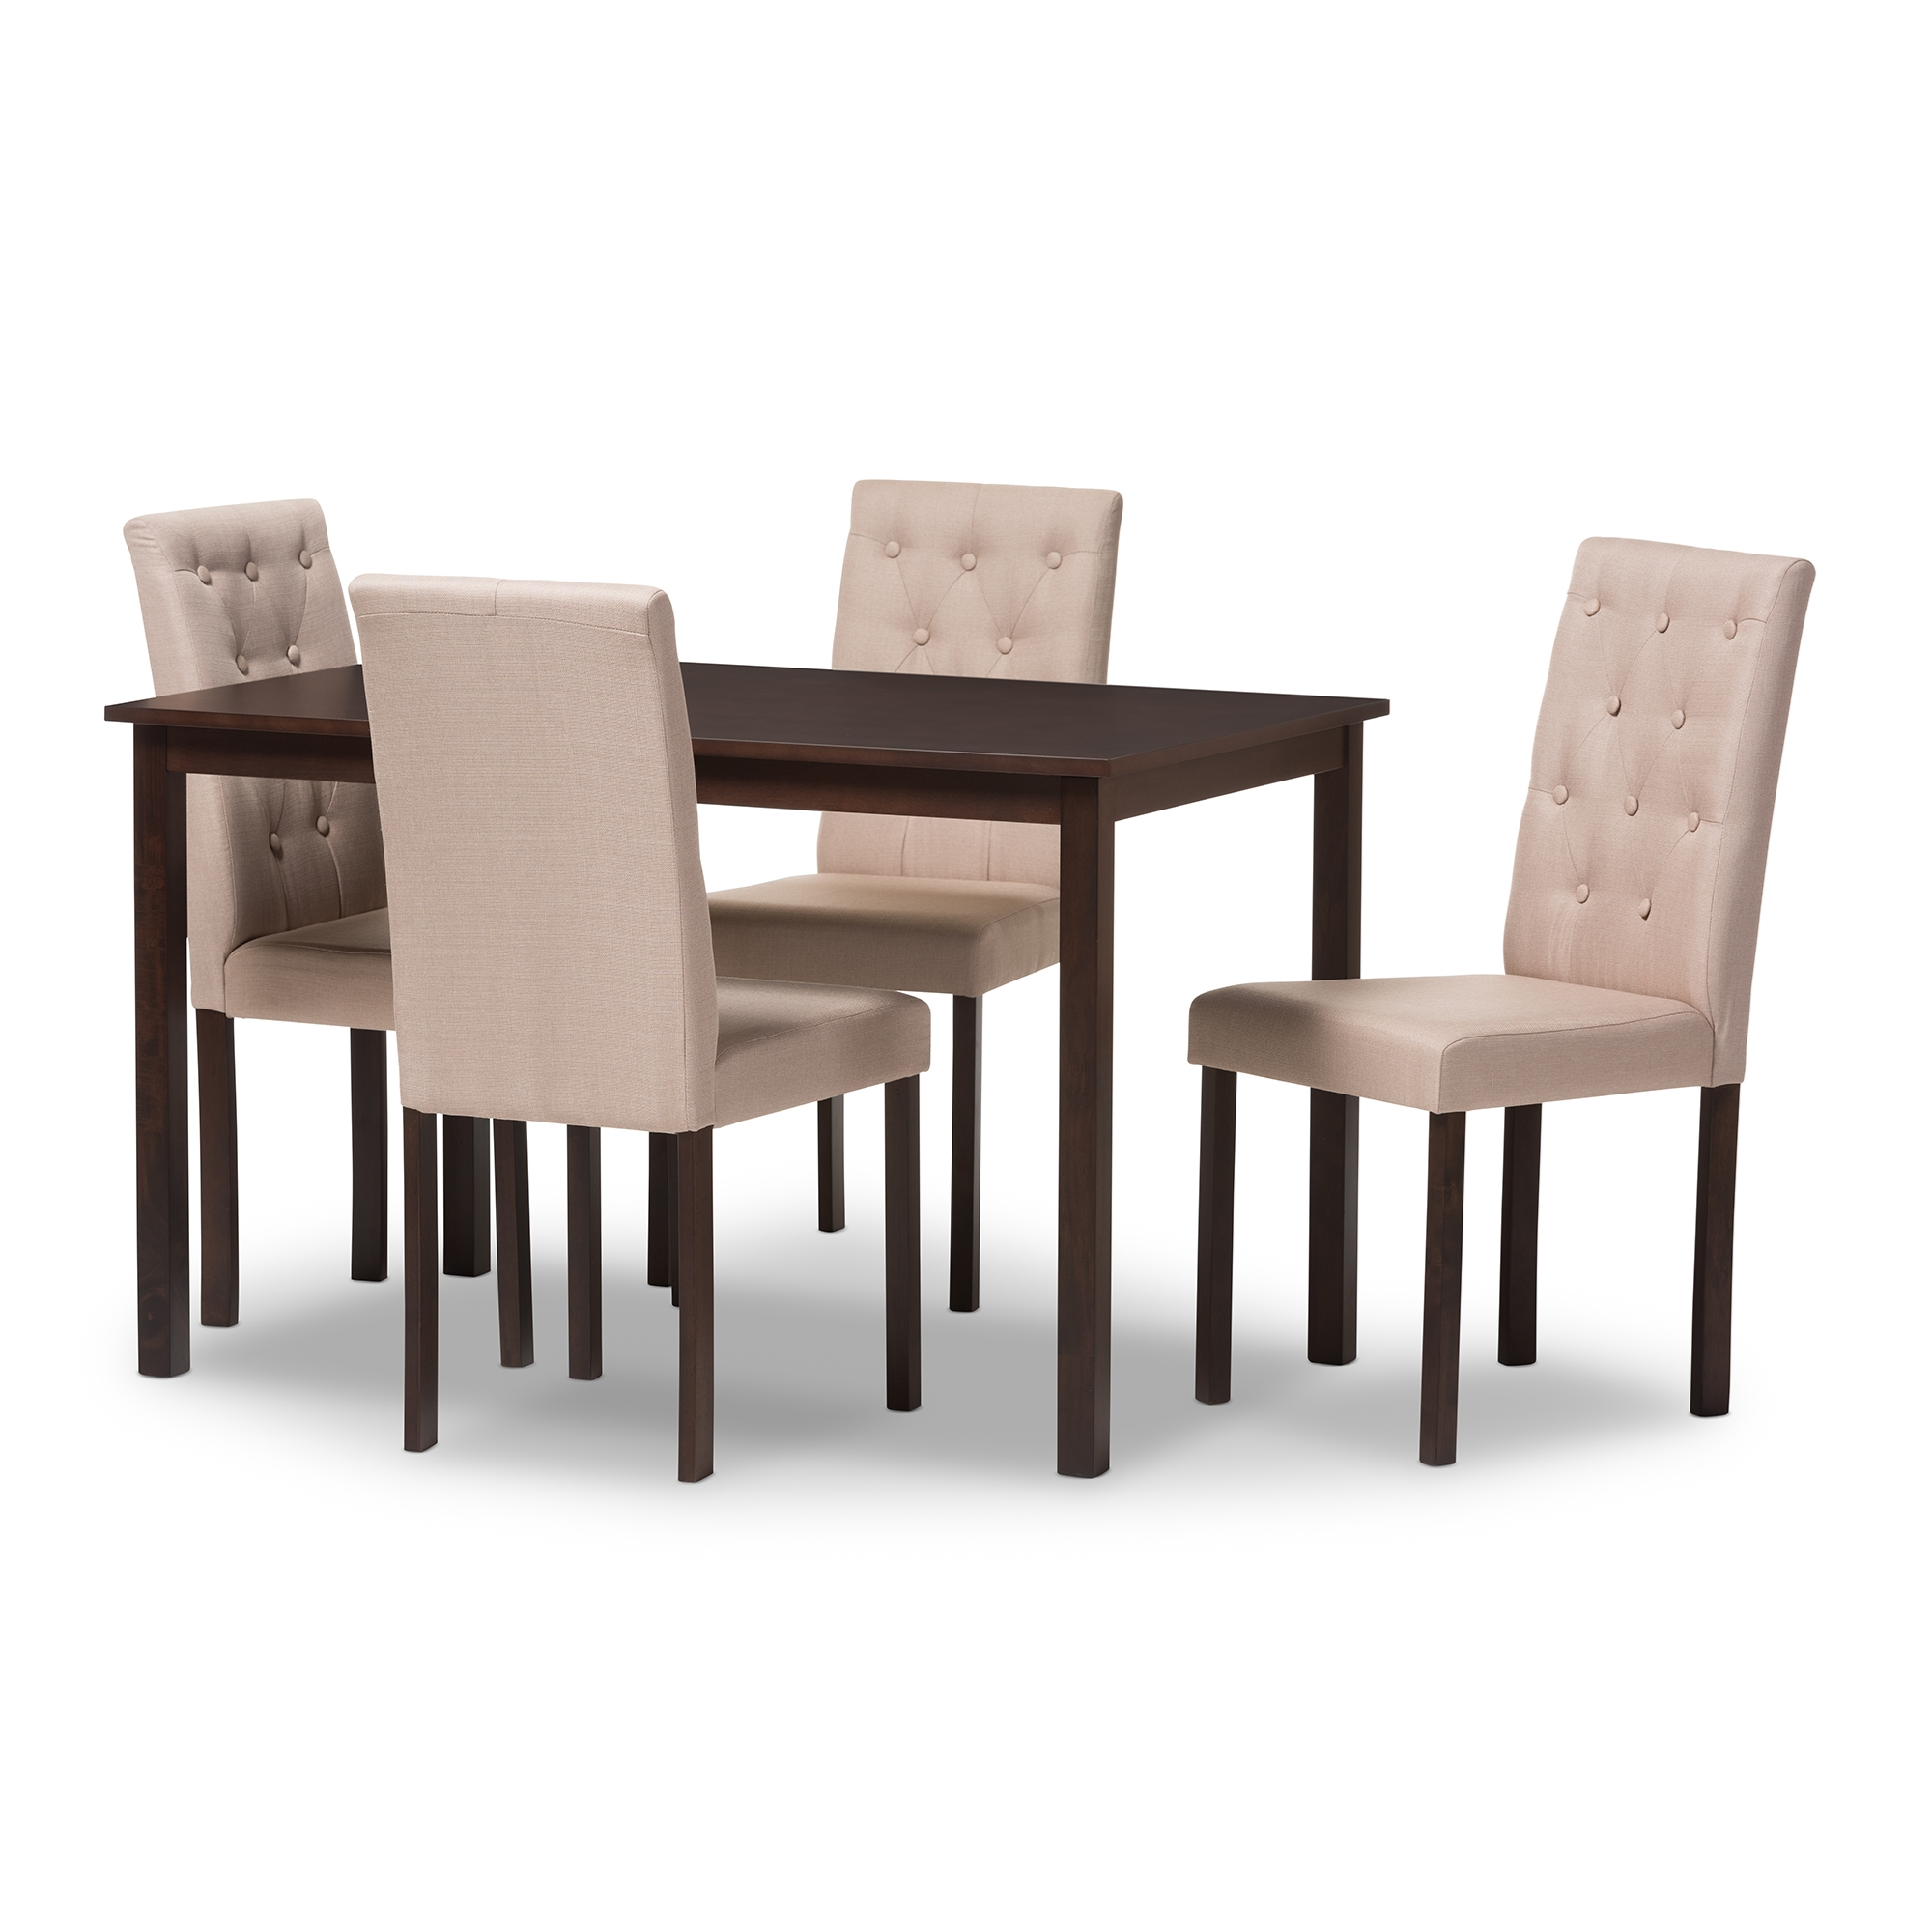 baxton studio gardner modern and 5piece dark brown finished beige fabric upholstered dining